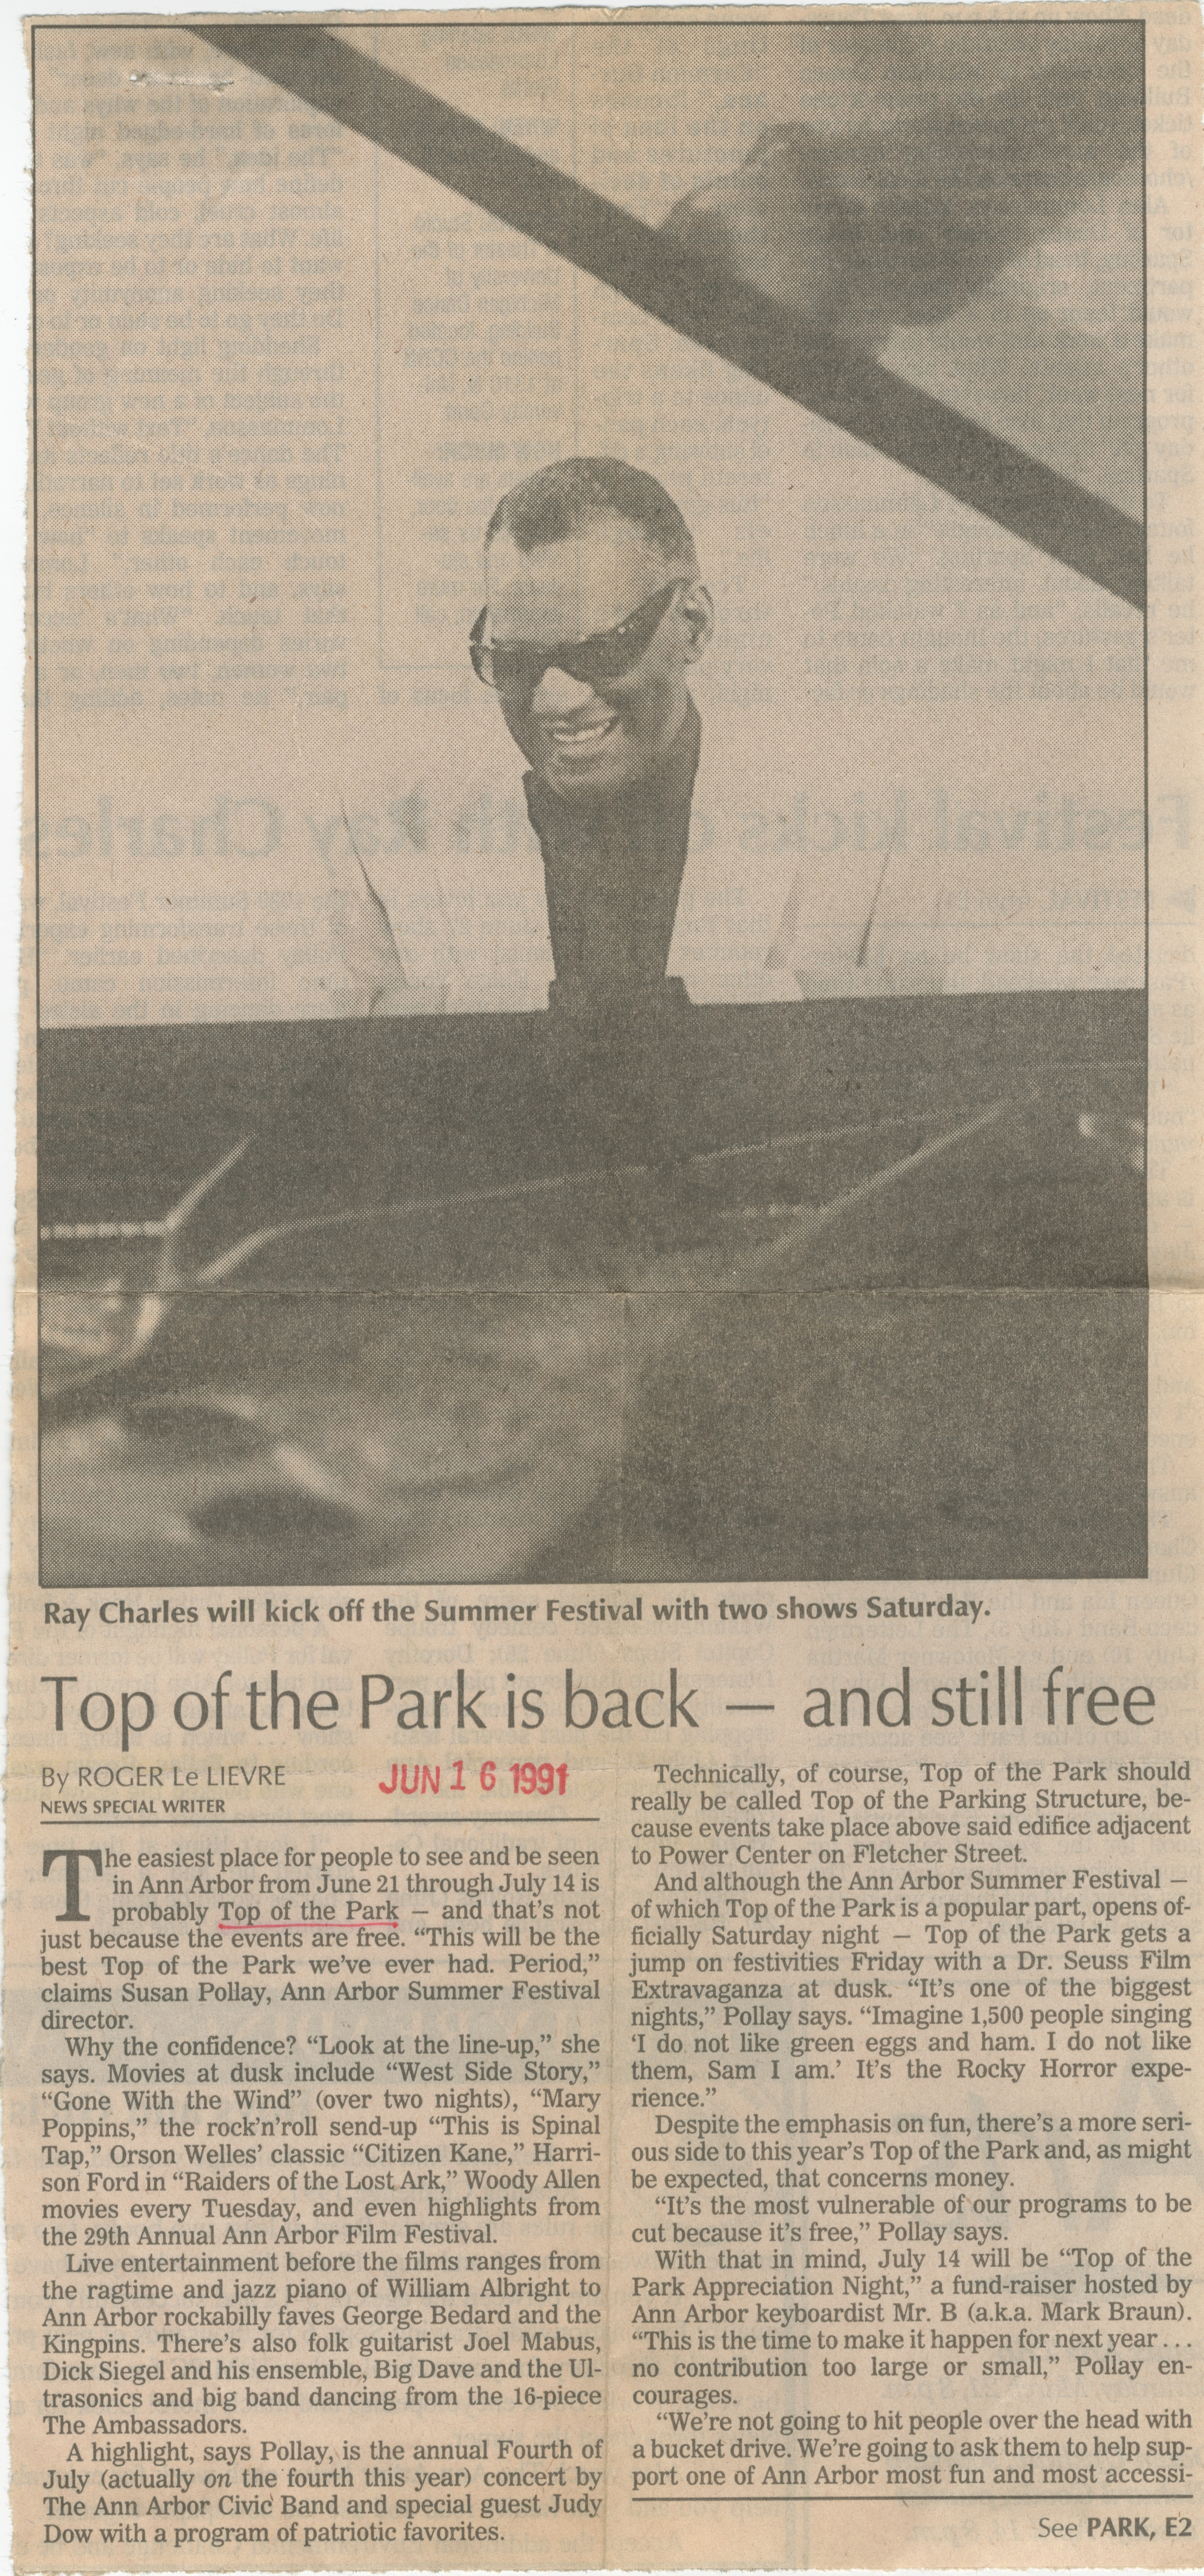 Top of the Park is back - and still free image